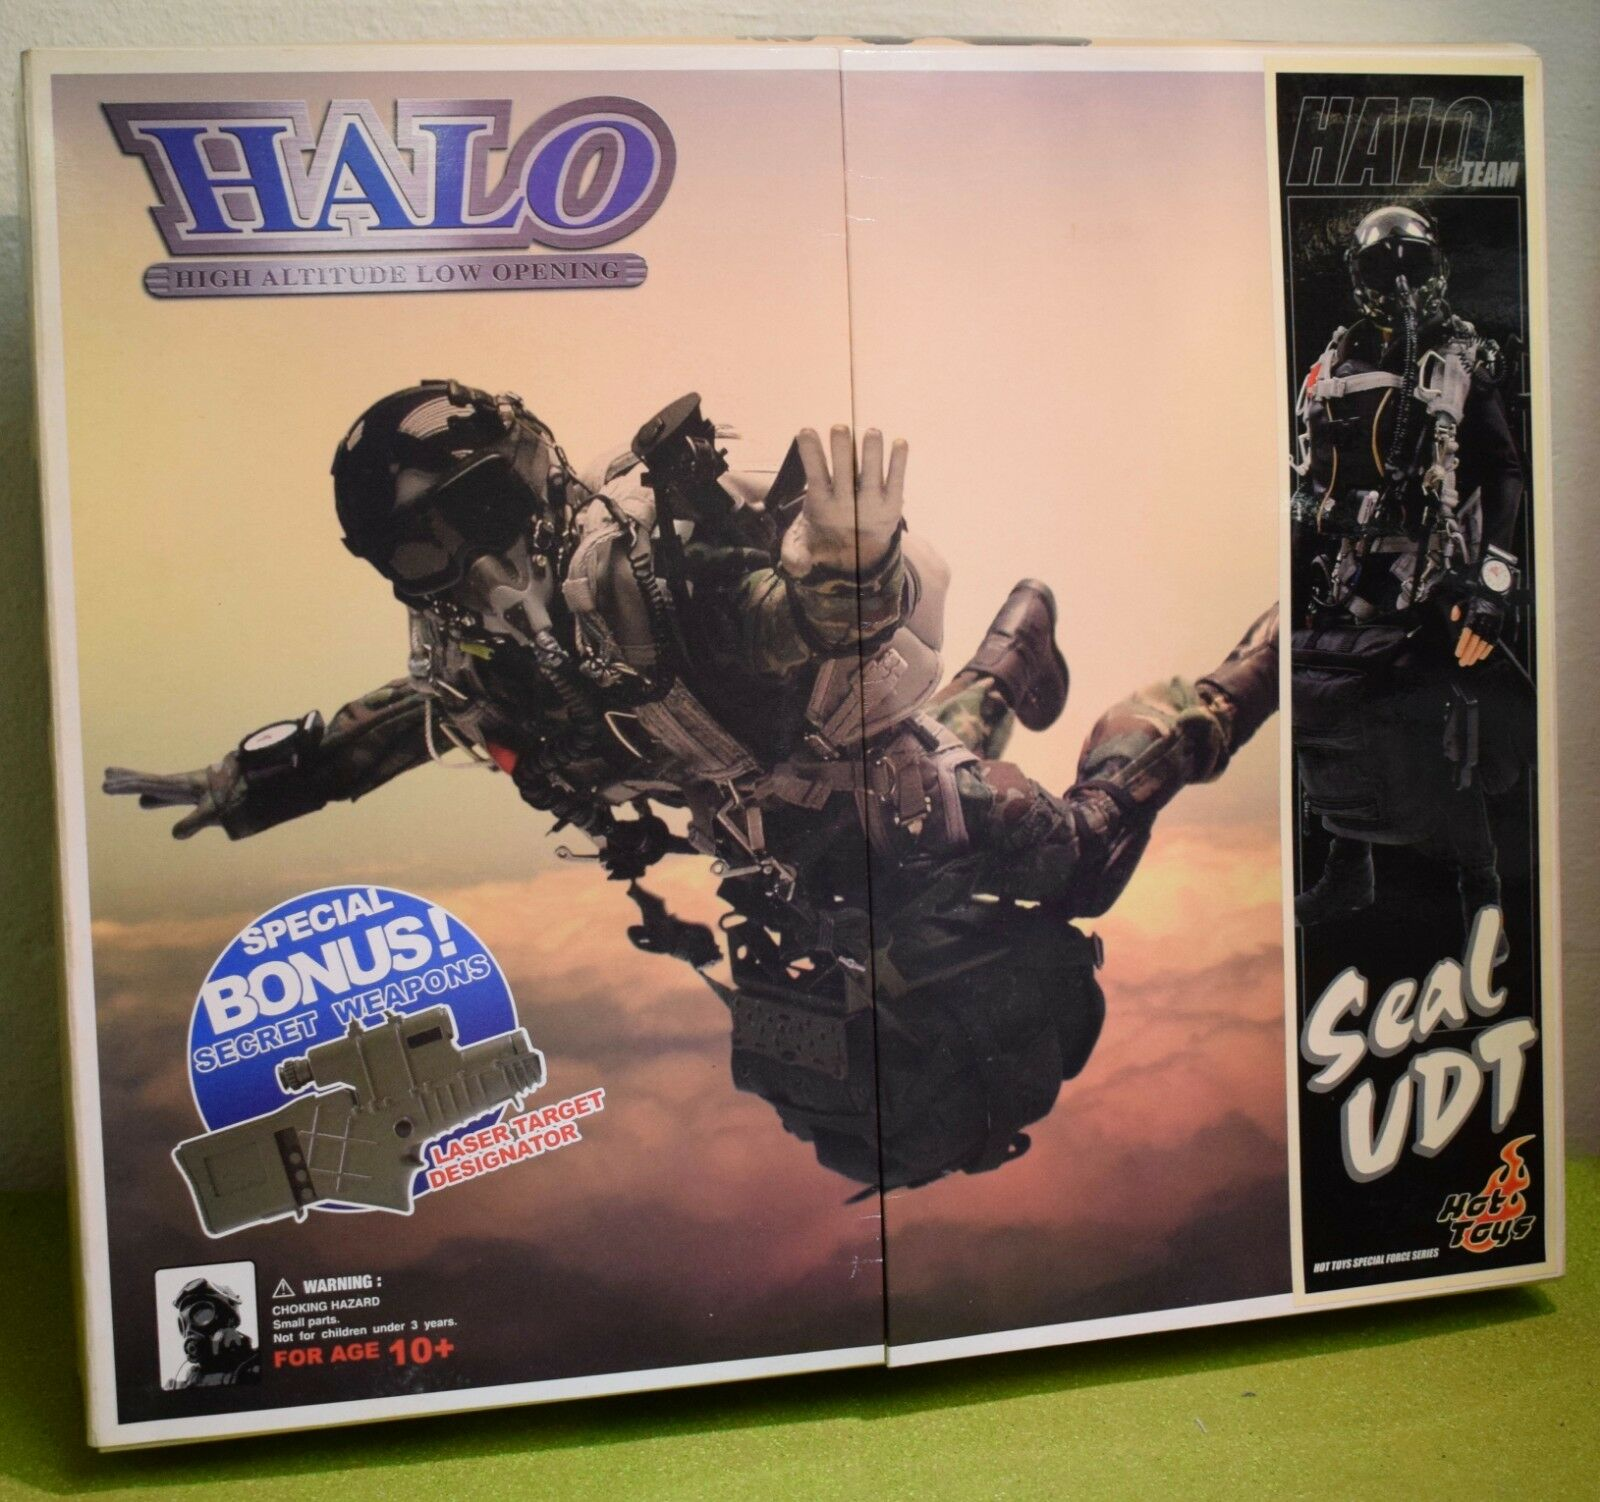 HOT TOYS 1 6 SCALE MODERN US HALO HIGH ALTITUDE LOW OPENING SEAL UDT